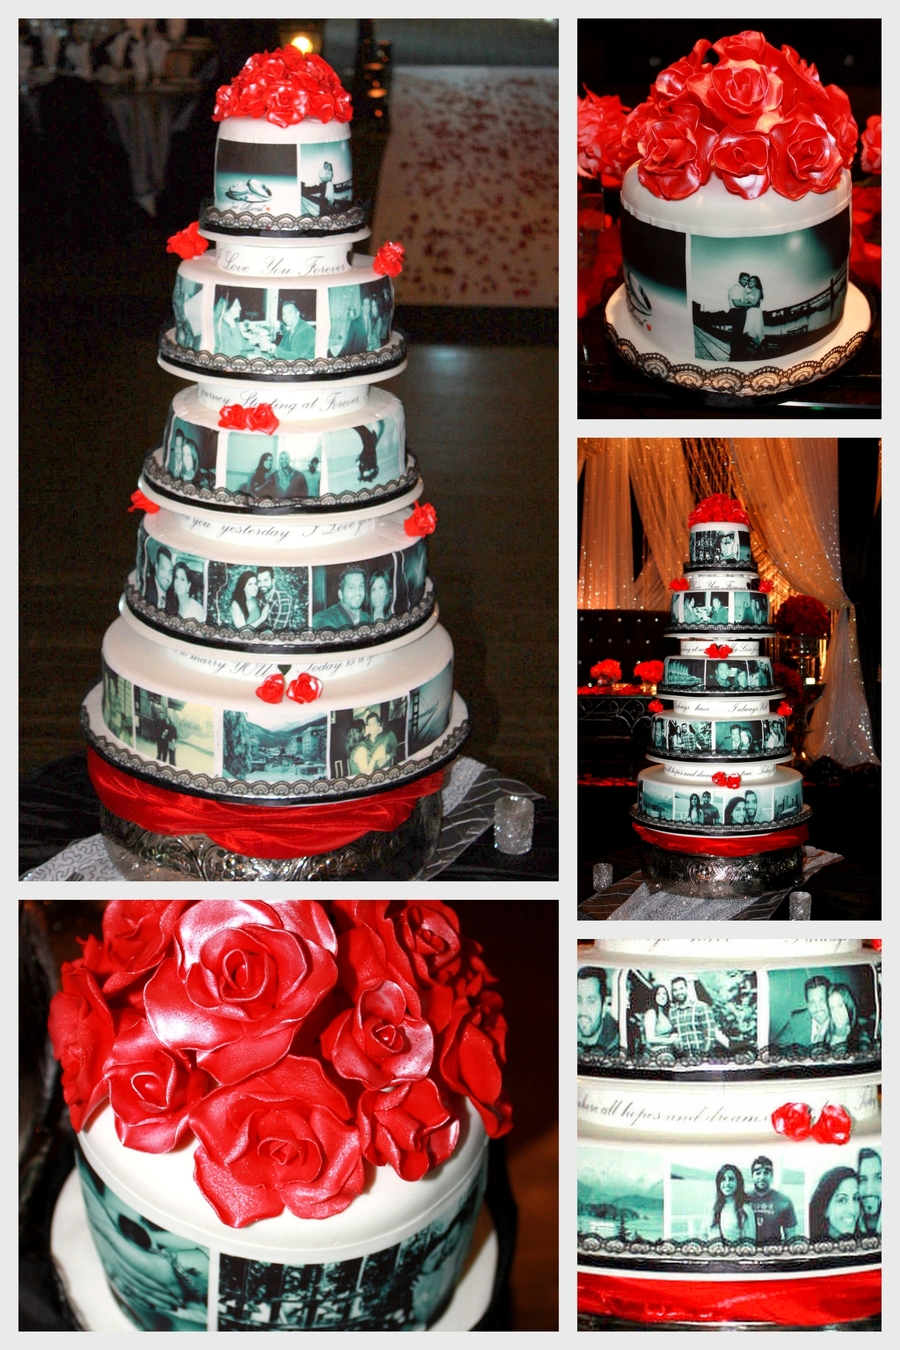 Edible Photo Wedding Cake - CakeCentral.com